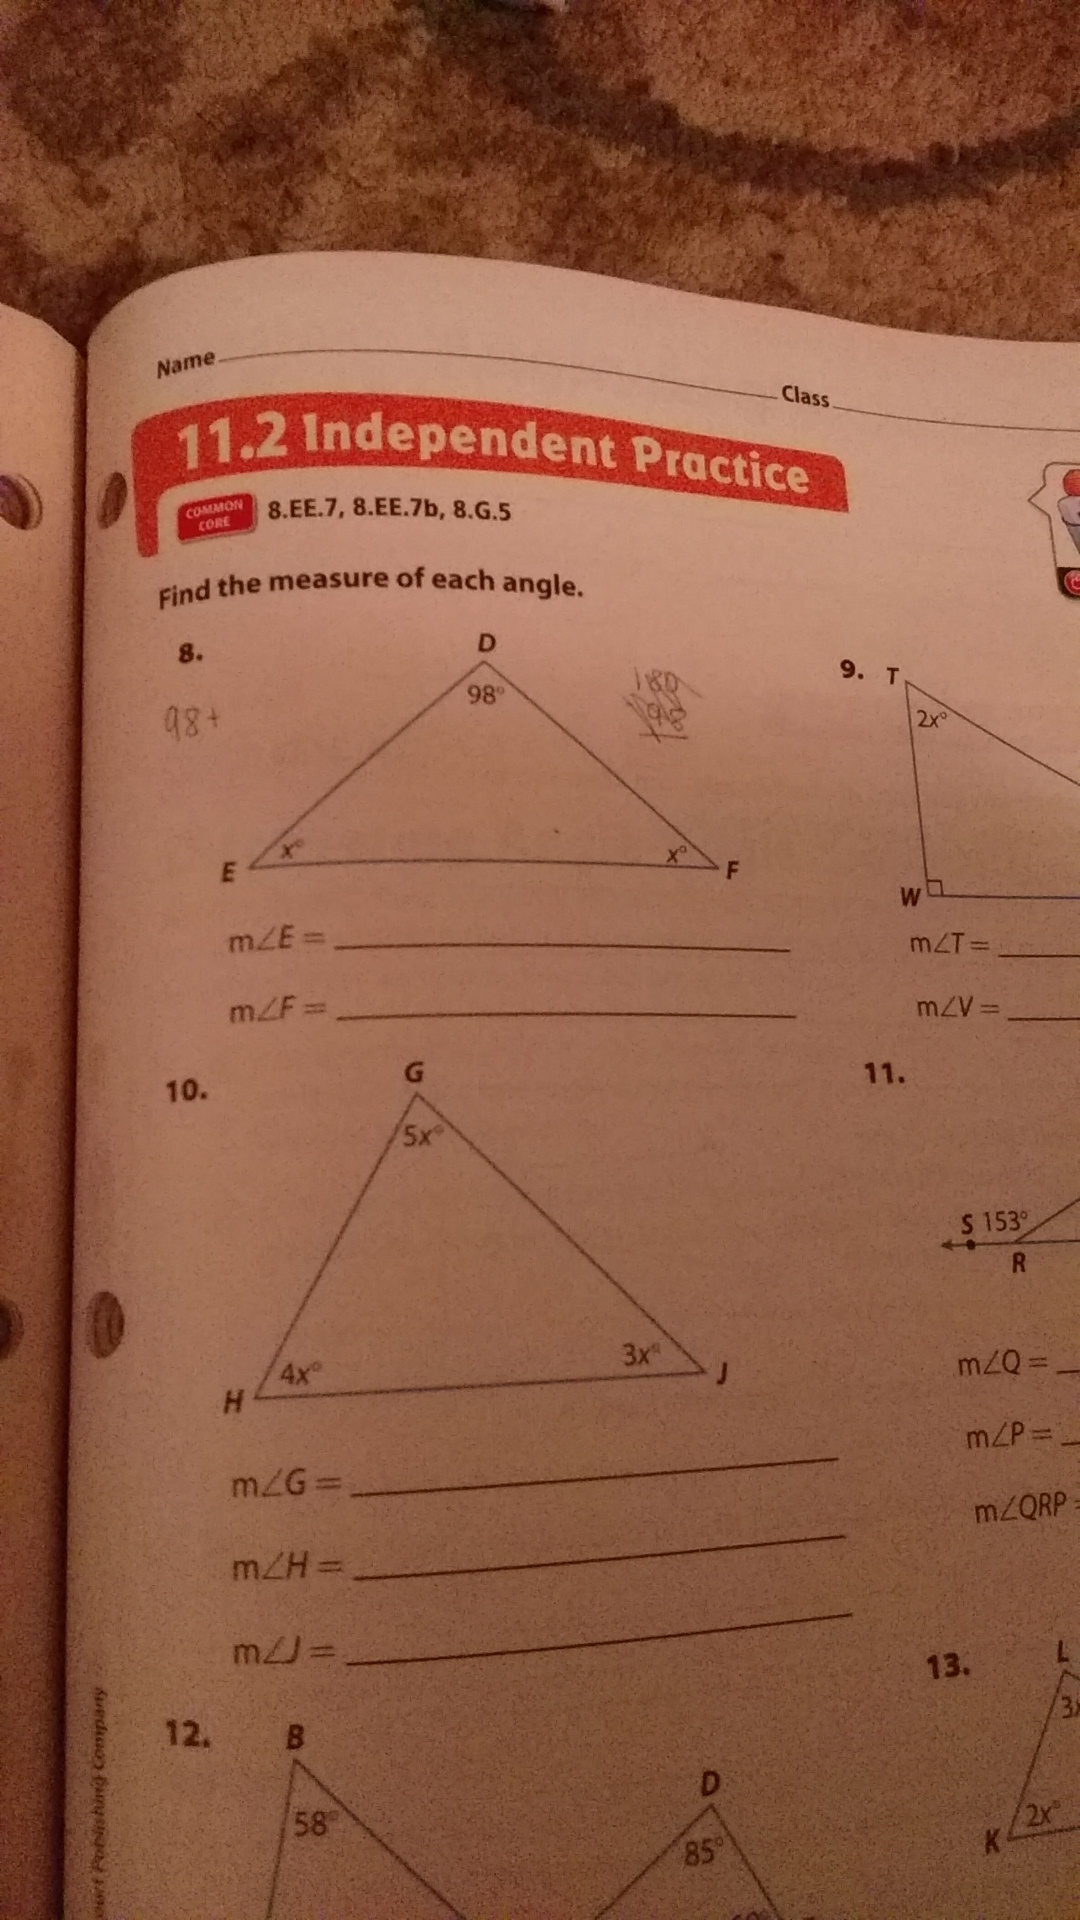 Find The Measure Of Each Angle Angle D 98 How Do I Find